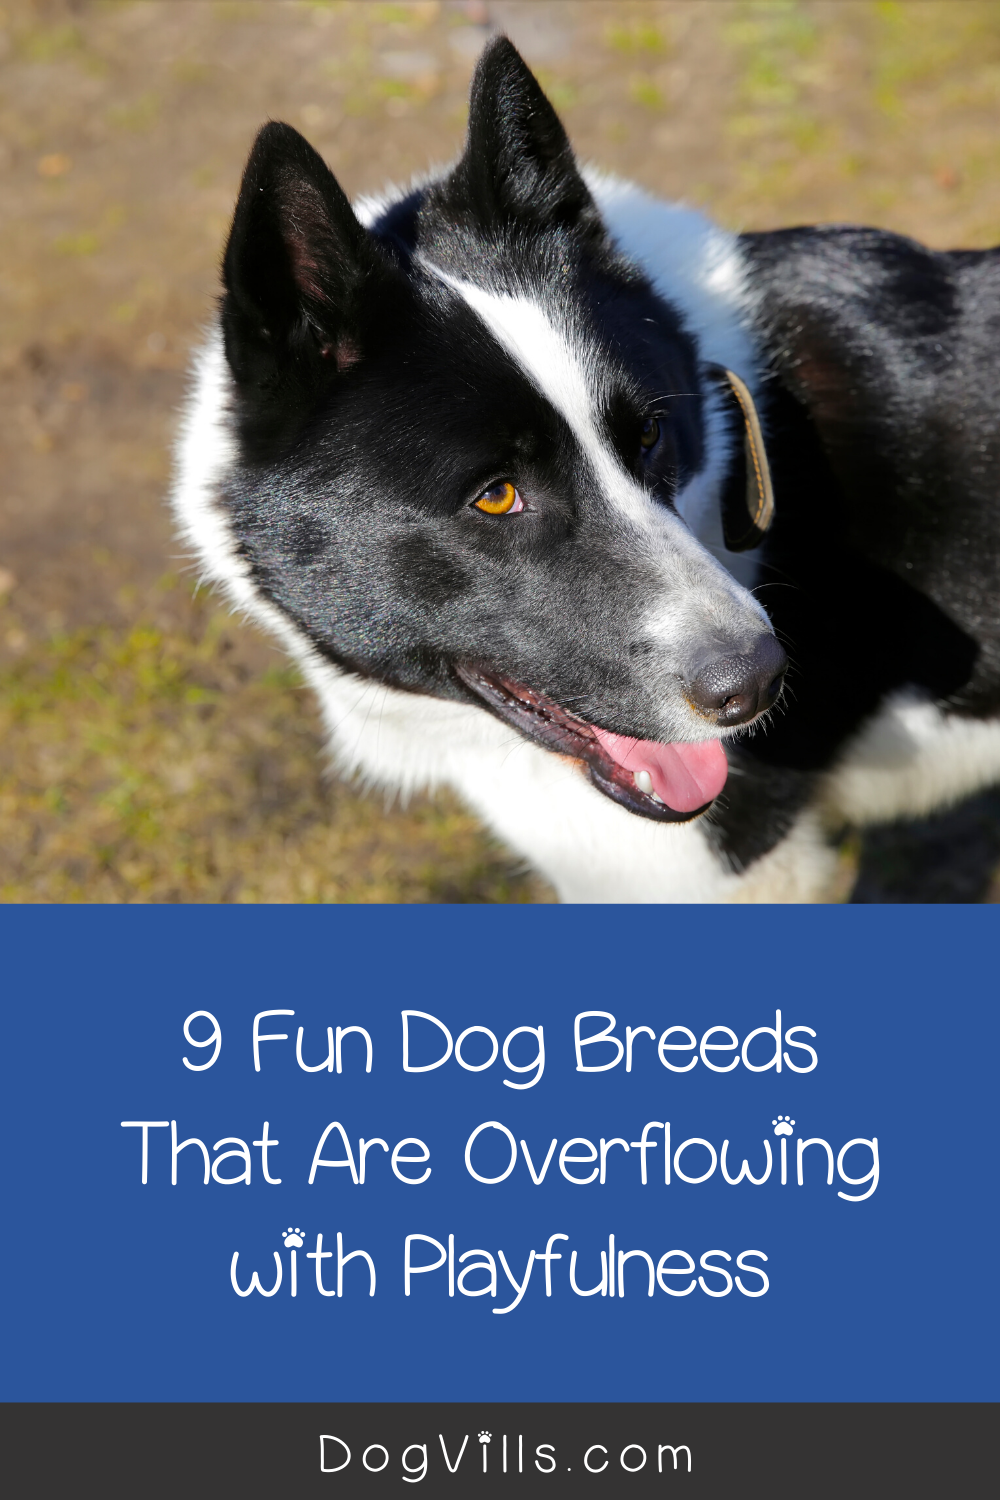 9 Fun Dog Breeds That Are Overflowing With Playfulness Dogvills In 2020 Dog Breeds Best Dogs Dogs